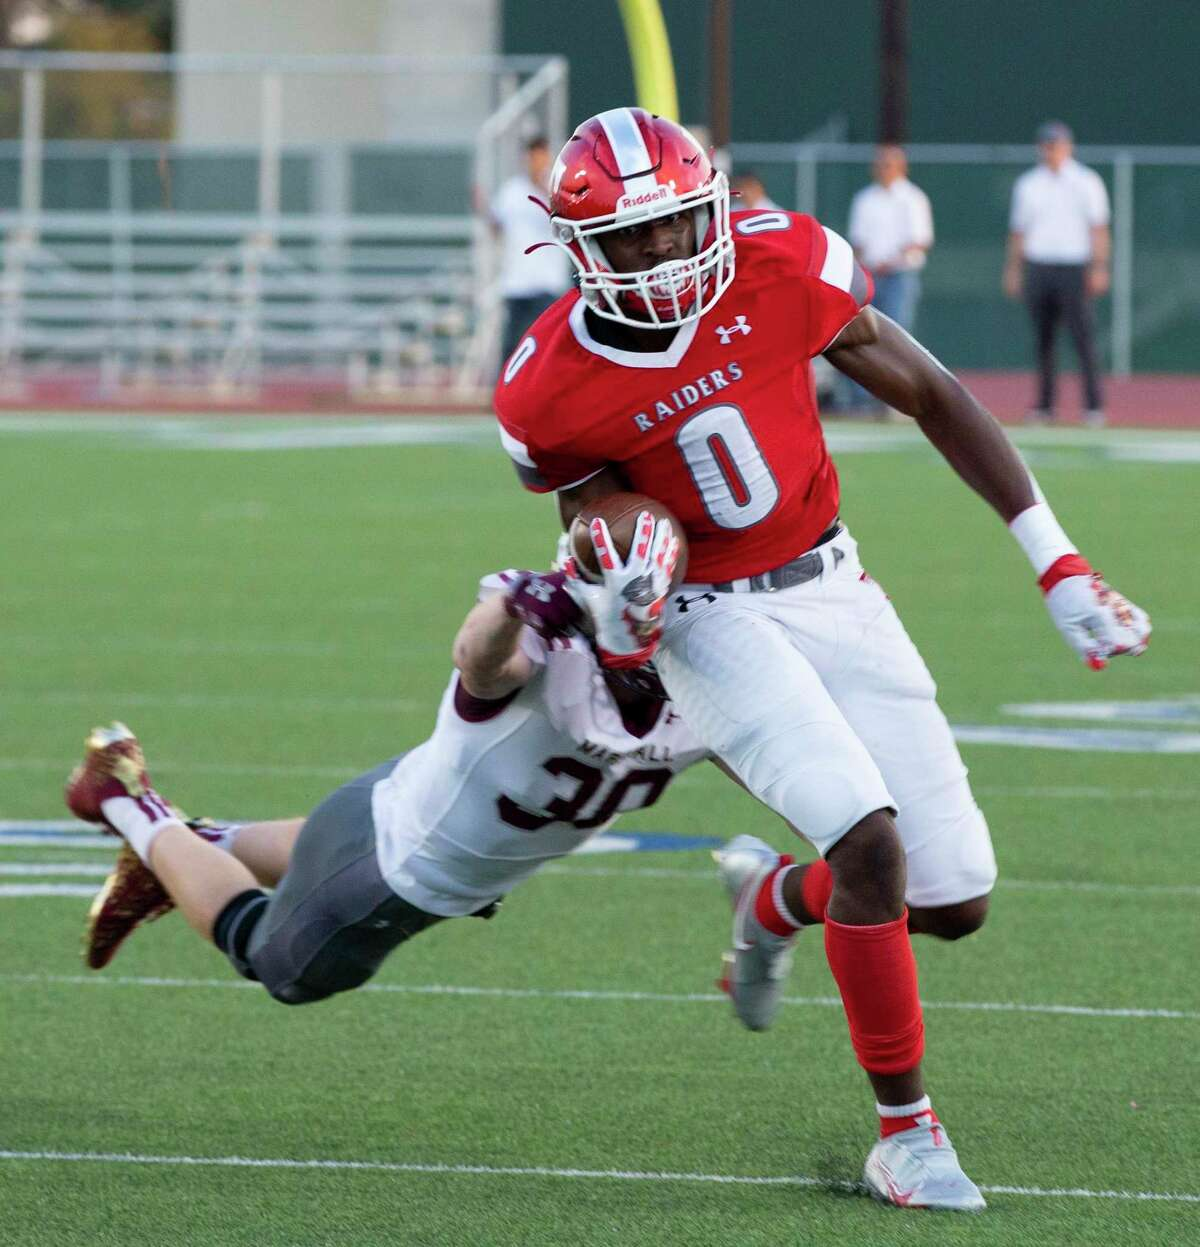 Taft running back, TJ Andrews carries the ball as Ben Klar, from Marshall, attempts to tackle him. Taft won 41-21.